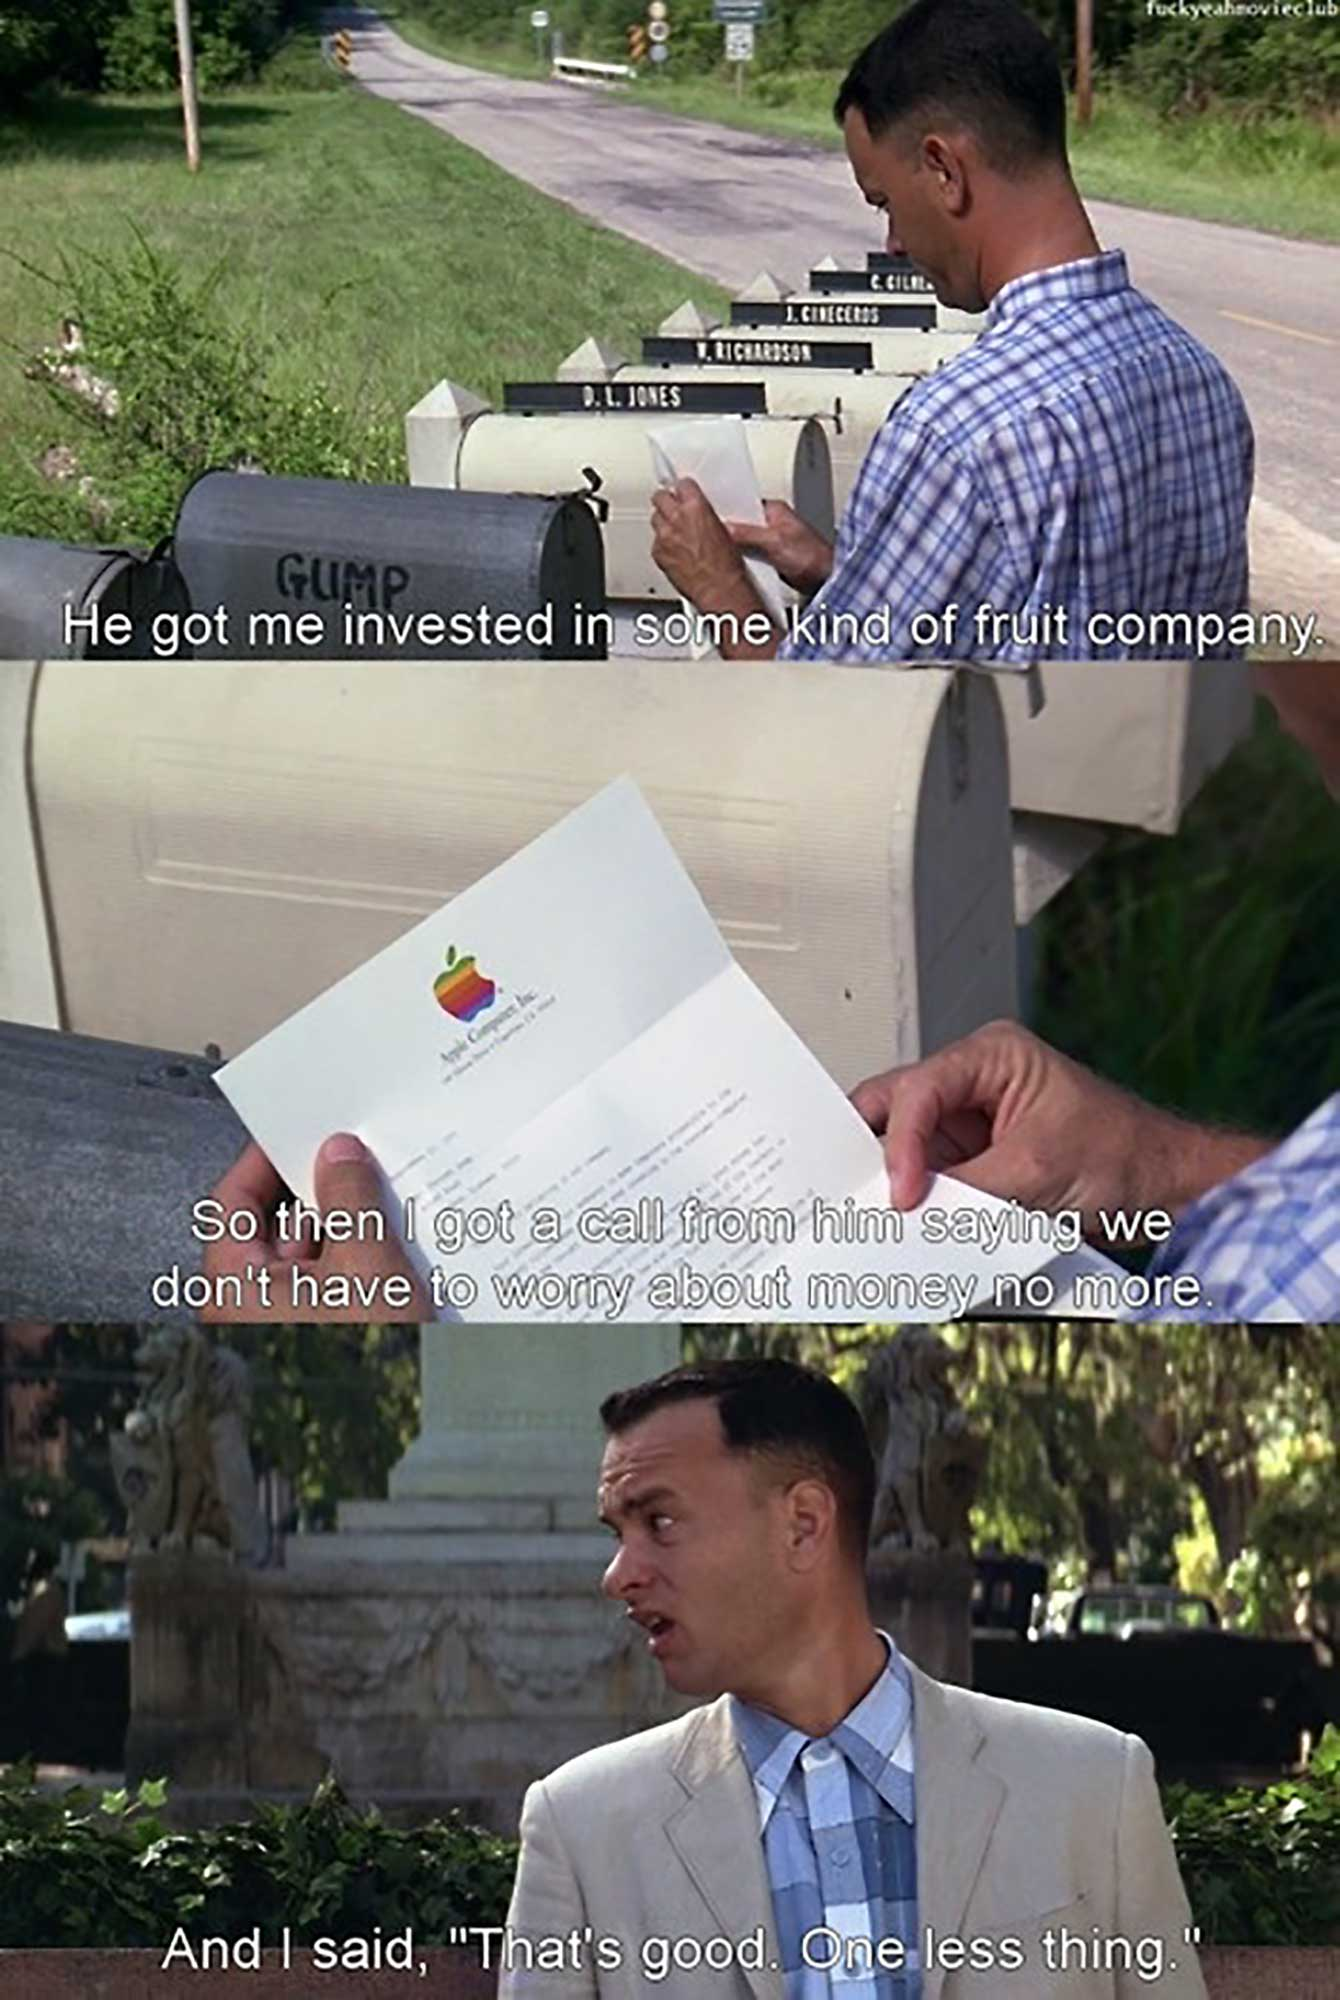 Forrest Gump had himself quite an ROI on the shares of some «fruit company» (that turned out to be Apple)